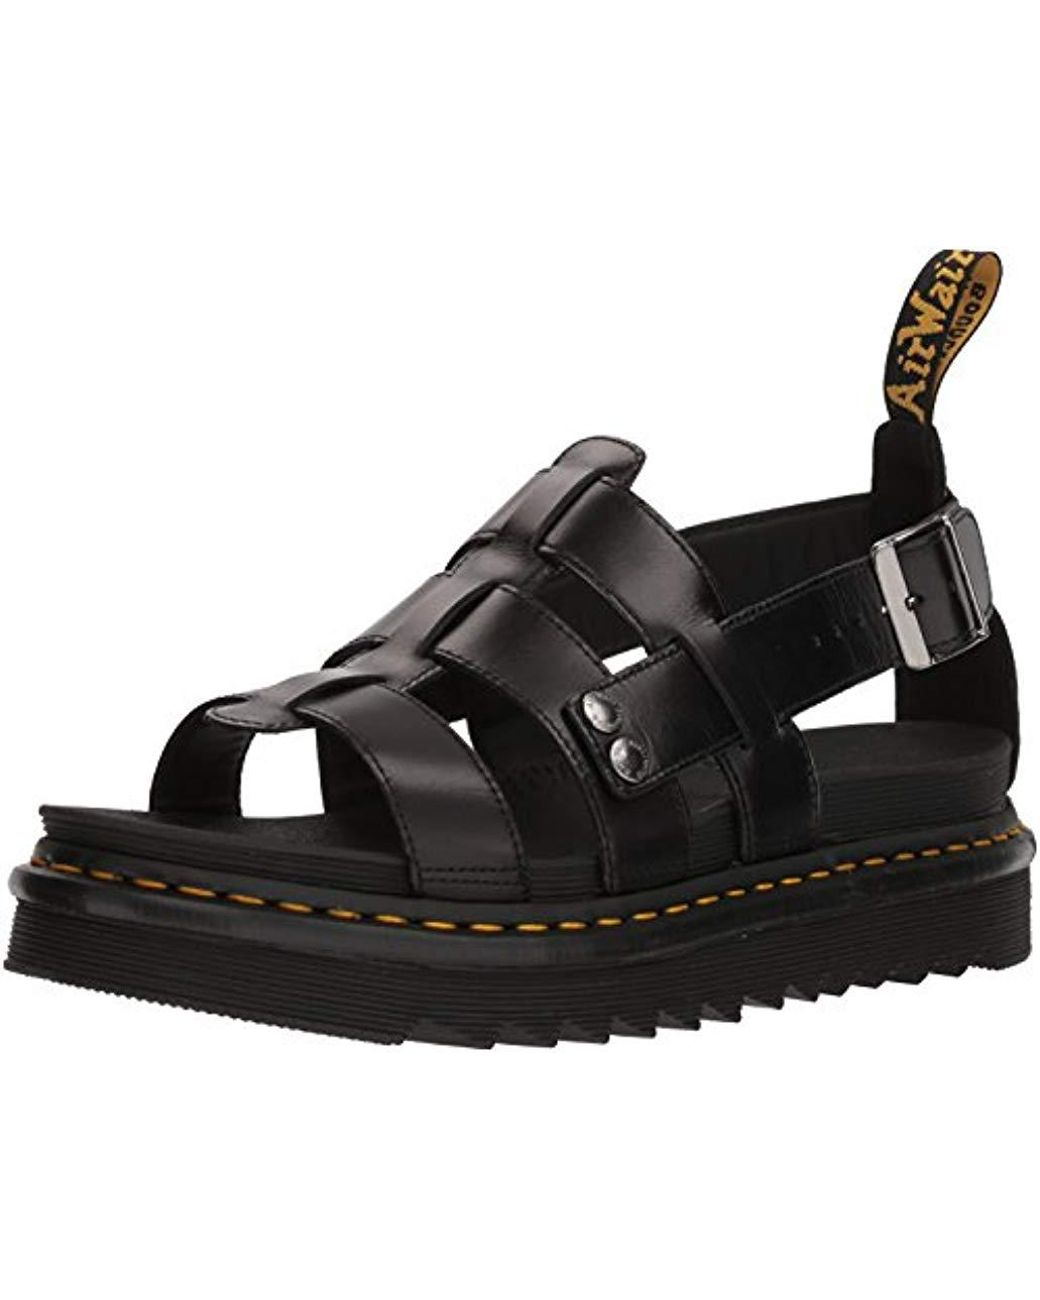 Black Unisex Adults' Terry Open Toe Sandals